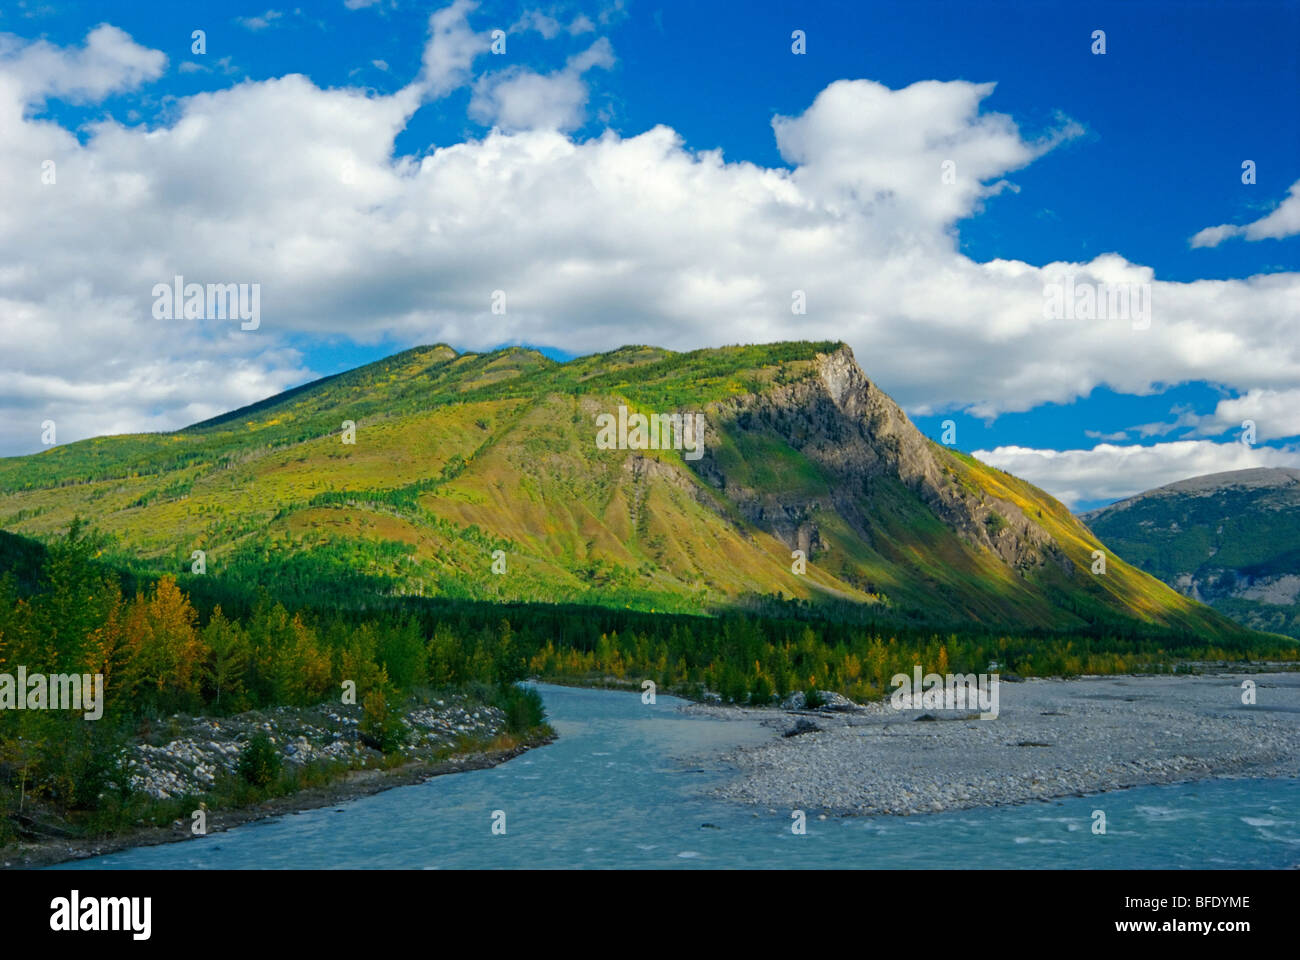 Racing River looking north to Goat Mountain near Toad River, British Columbia, Canada - Stock Image